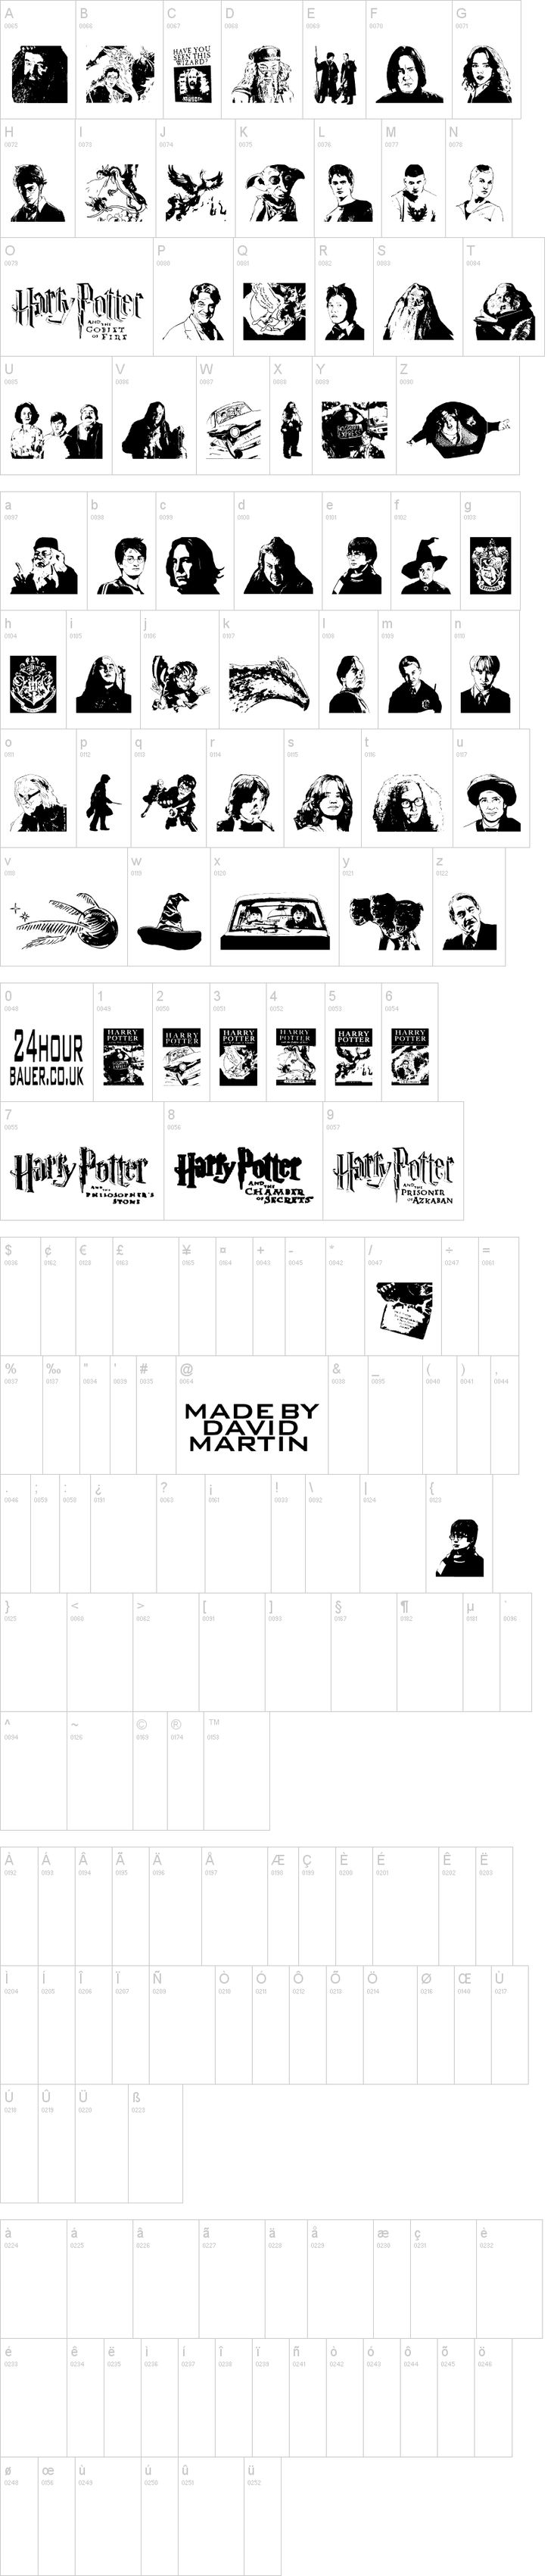 best harry potter english ideas harry potter  a harry potter dingbat font plus this site also has other harry potter fonts